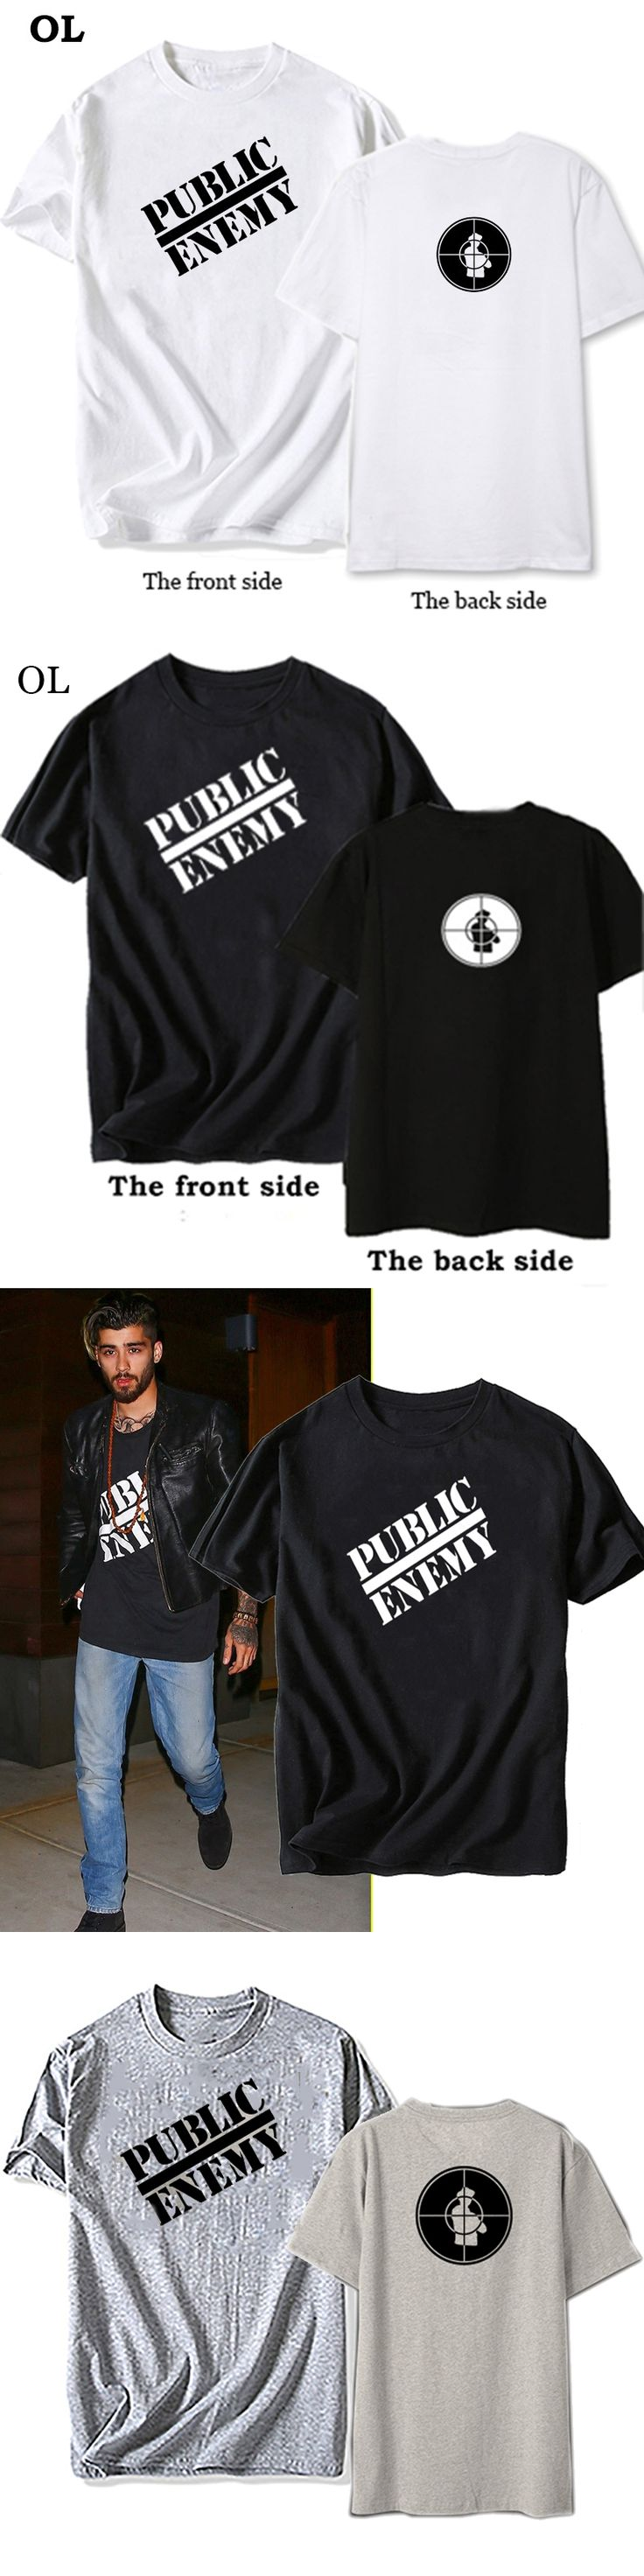 Zayn Malik Mens T Shirts clothing Public Enemy Clothes Men Cotton The Same Style T Shirt Men plus size